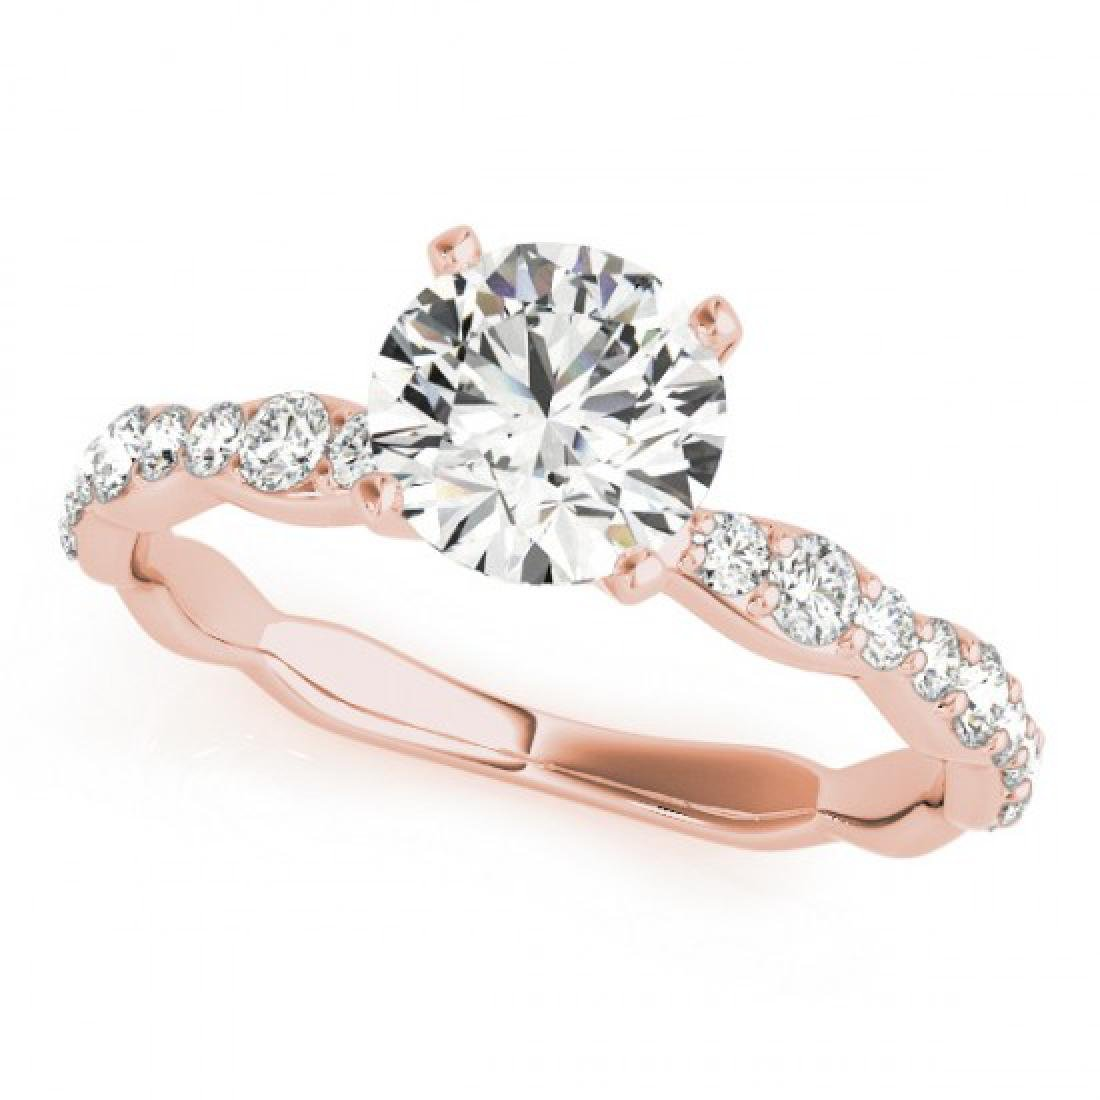 1.4 CTW Certified VS/SI Diamond Solitaire Ring 14K Rose - 2